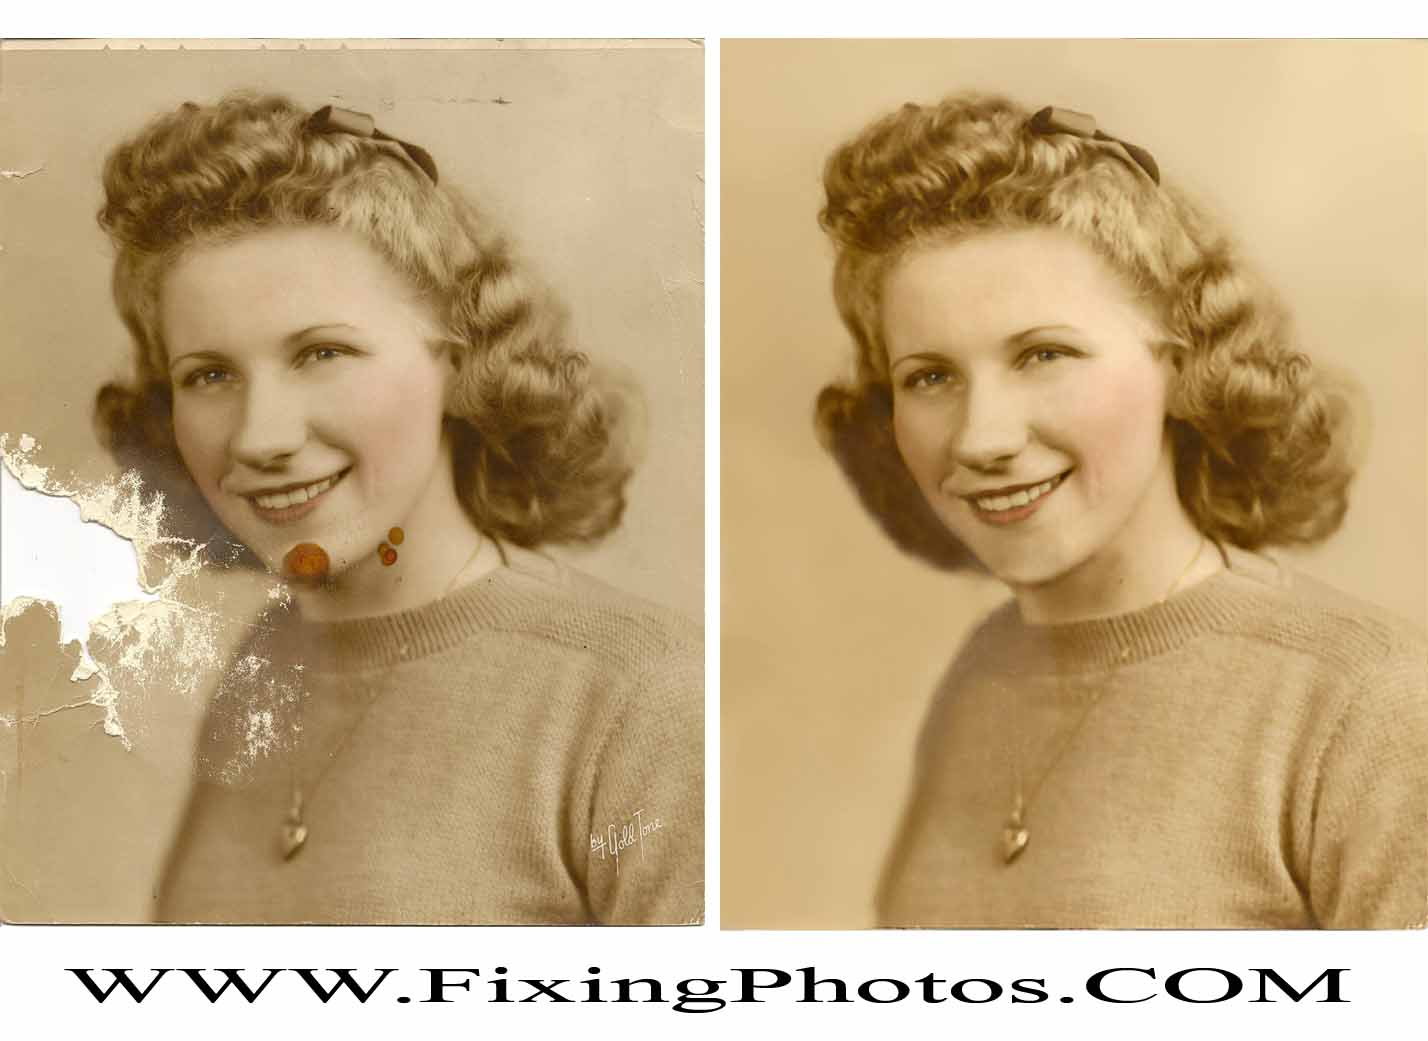 Photo Repair Wizards of Fixing Photos Has Been Piecing Together Damaged Photos Since 2003 Visit www.fixingphotos.com If you are not satisfied with the rework, we will refund your money! #photorepair #photorestoration #Anniversarygift #weddingphotorepair